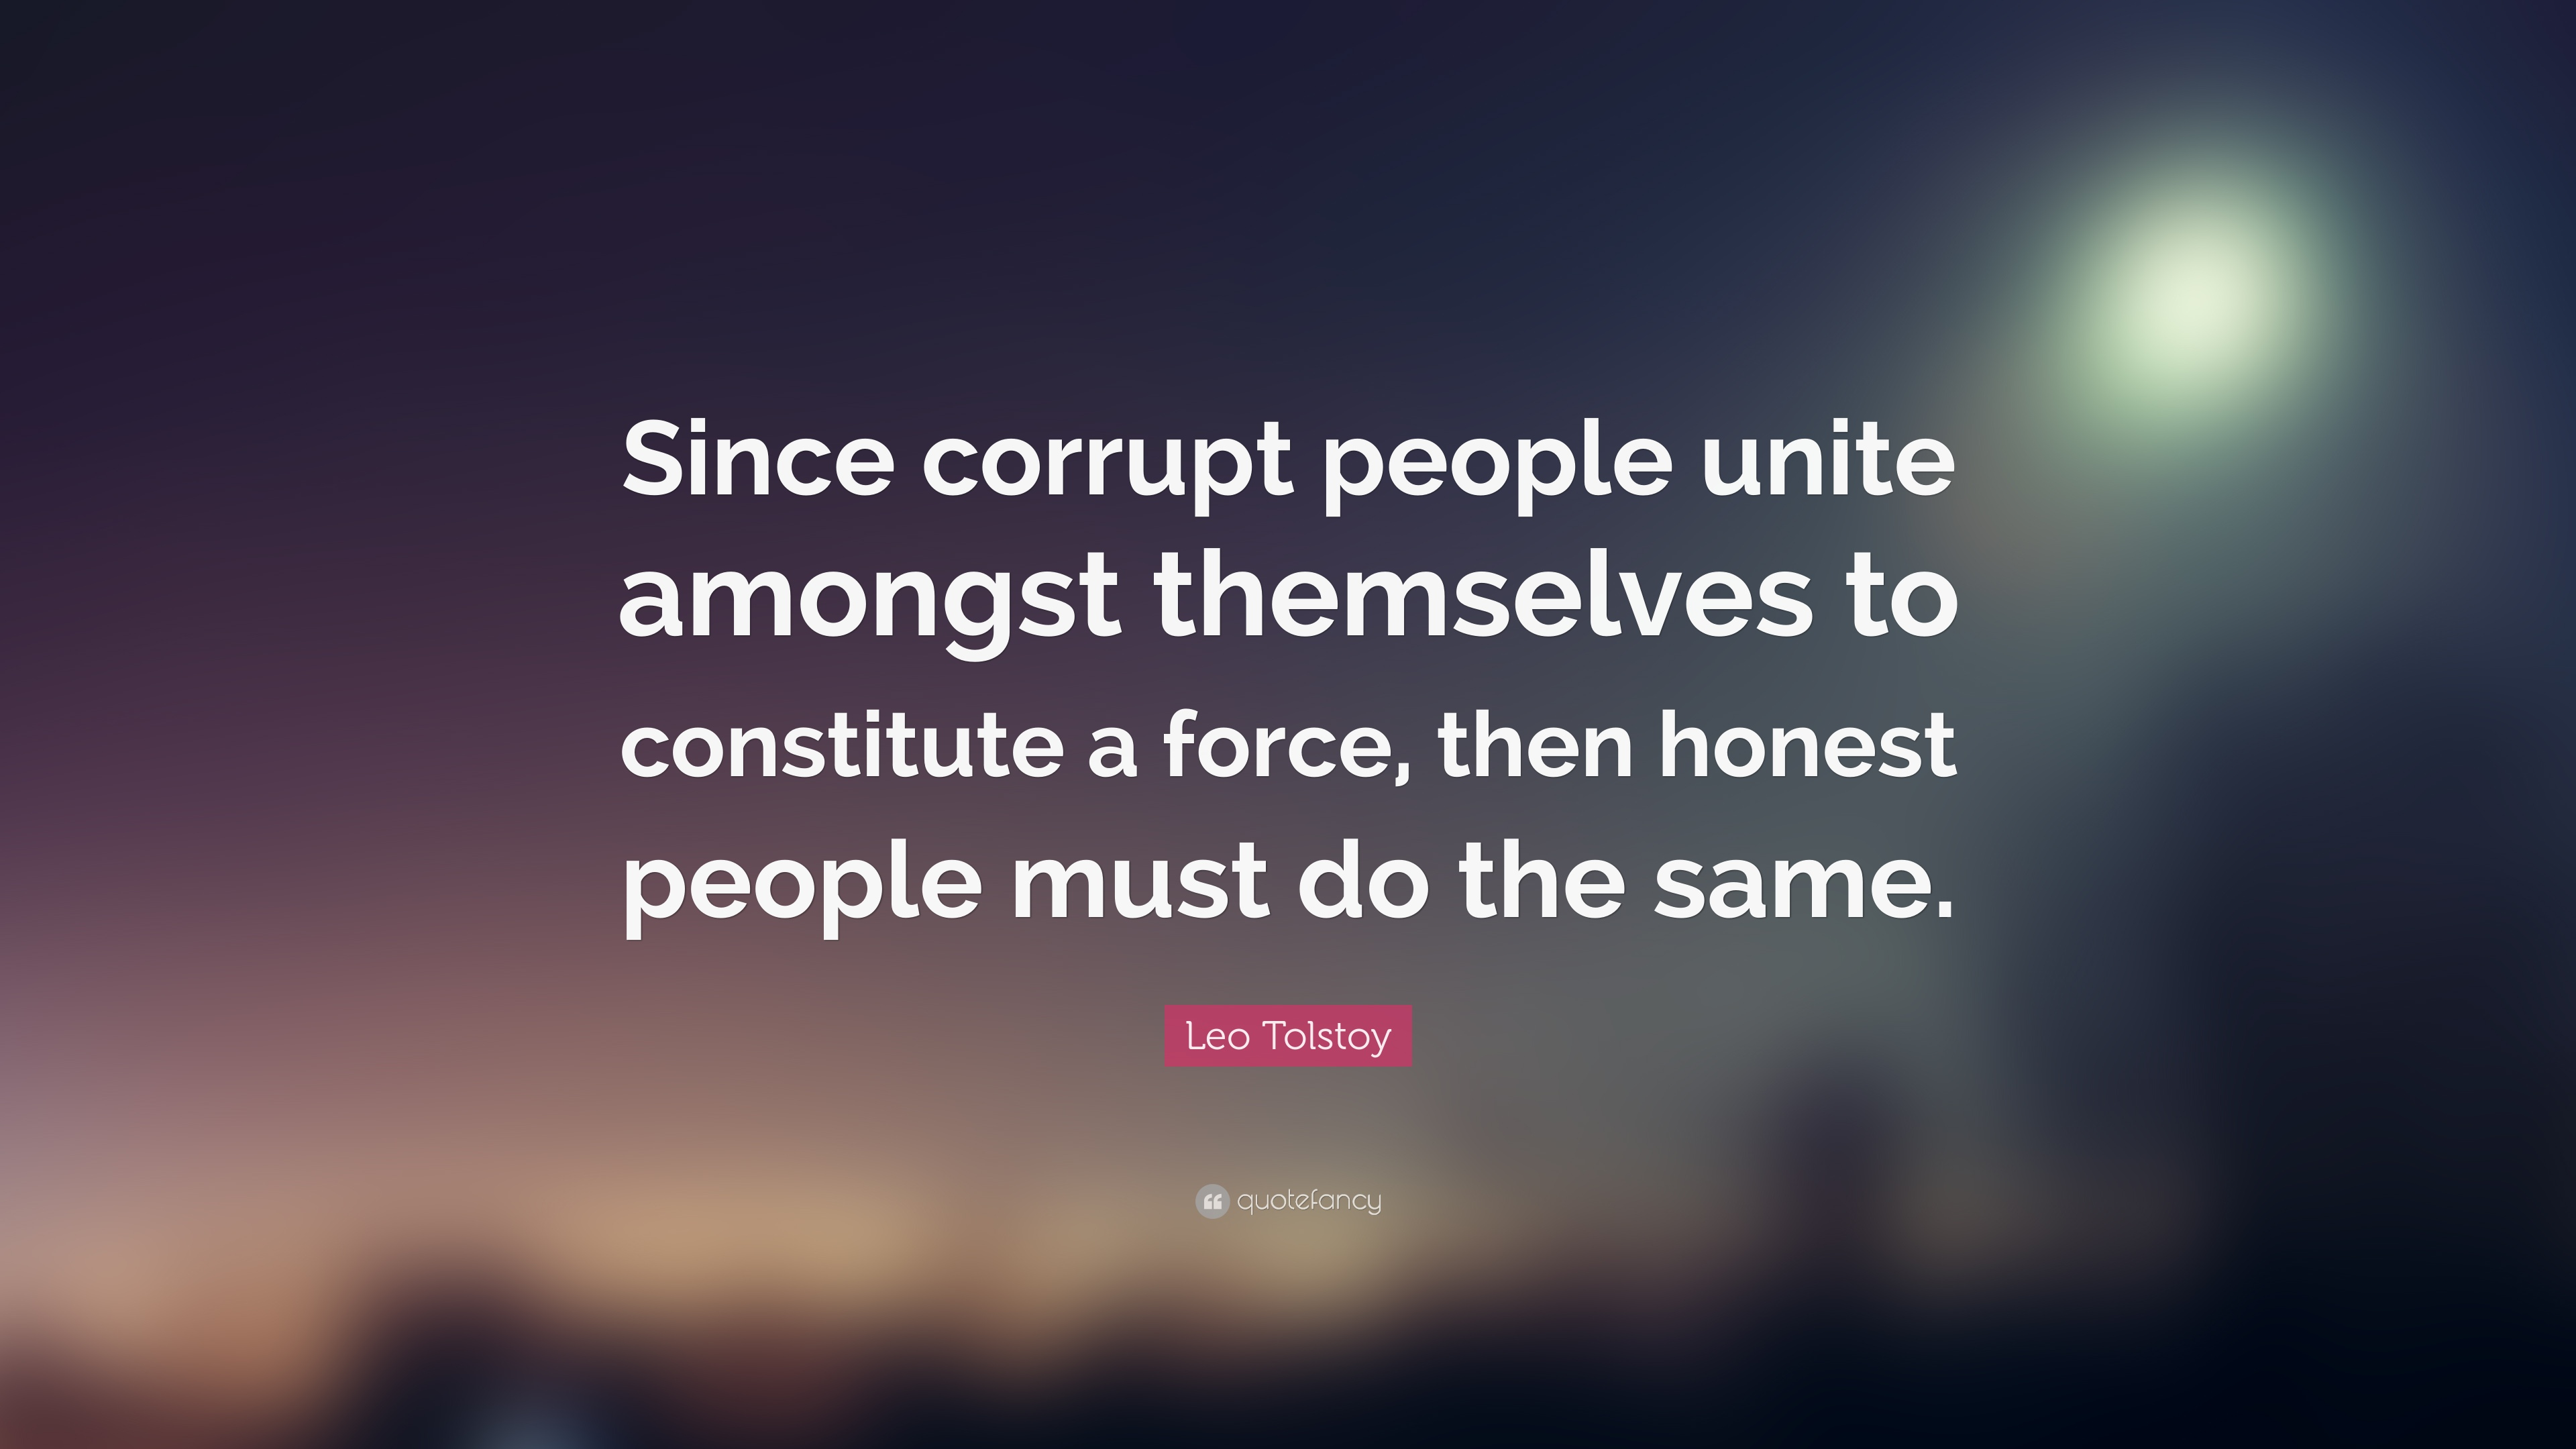 Socrates Wallpaper Quotes Leo Tolstoy Quote Since Corrupt People Unite Amongst